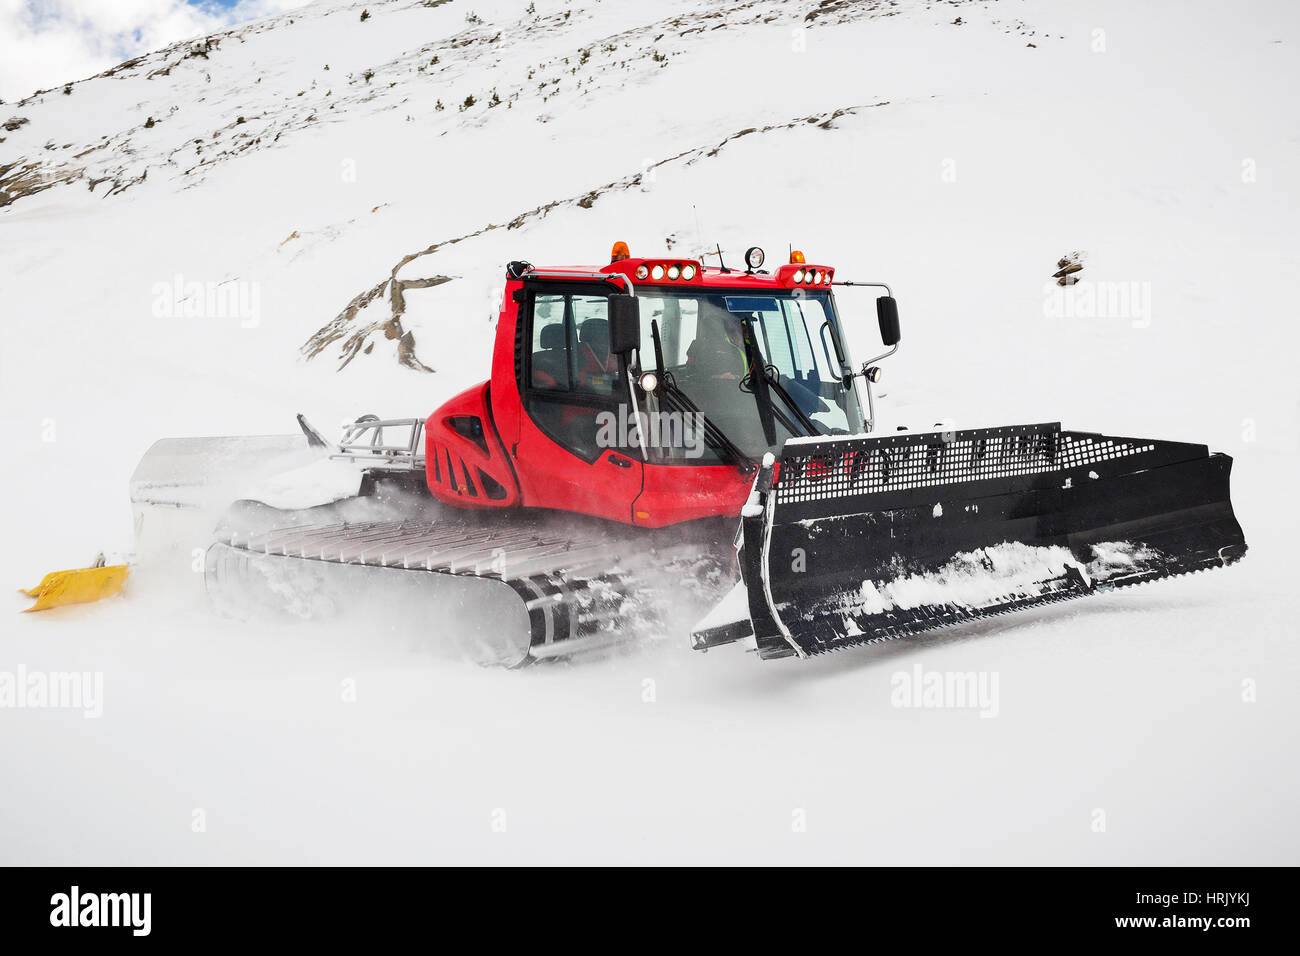 A snow plough grooming the piste at Obergurgl in Austria. Motion blur on the fast moving caterpillar tracks. - Stock Image